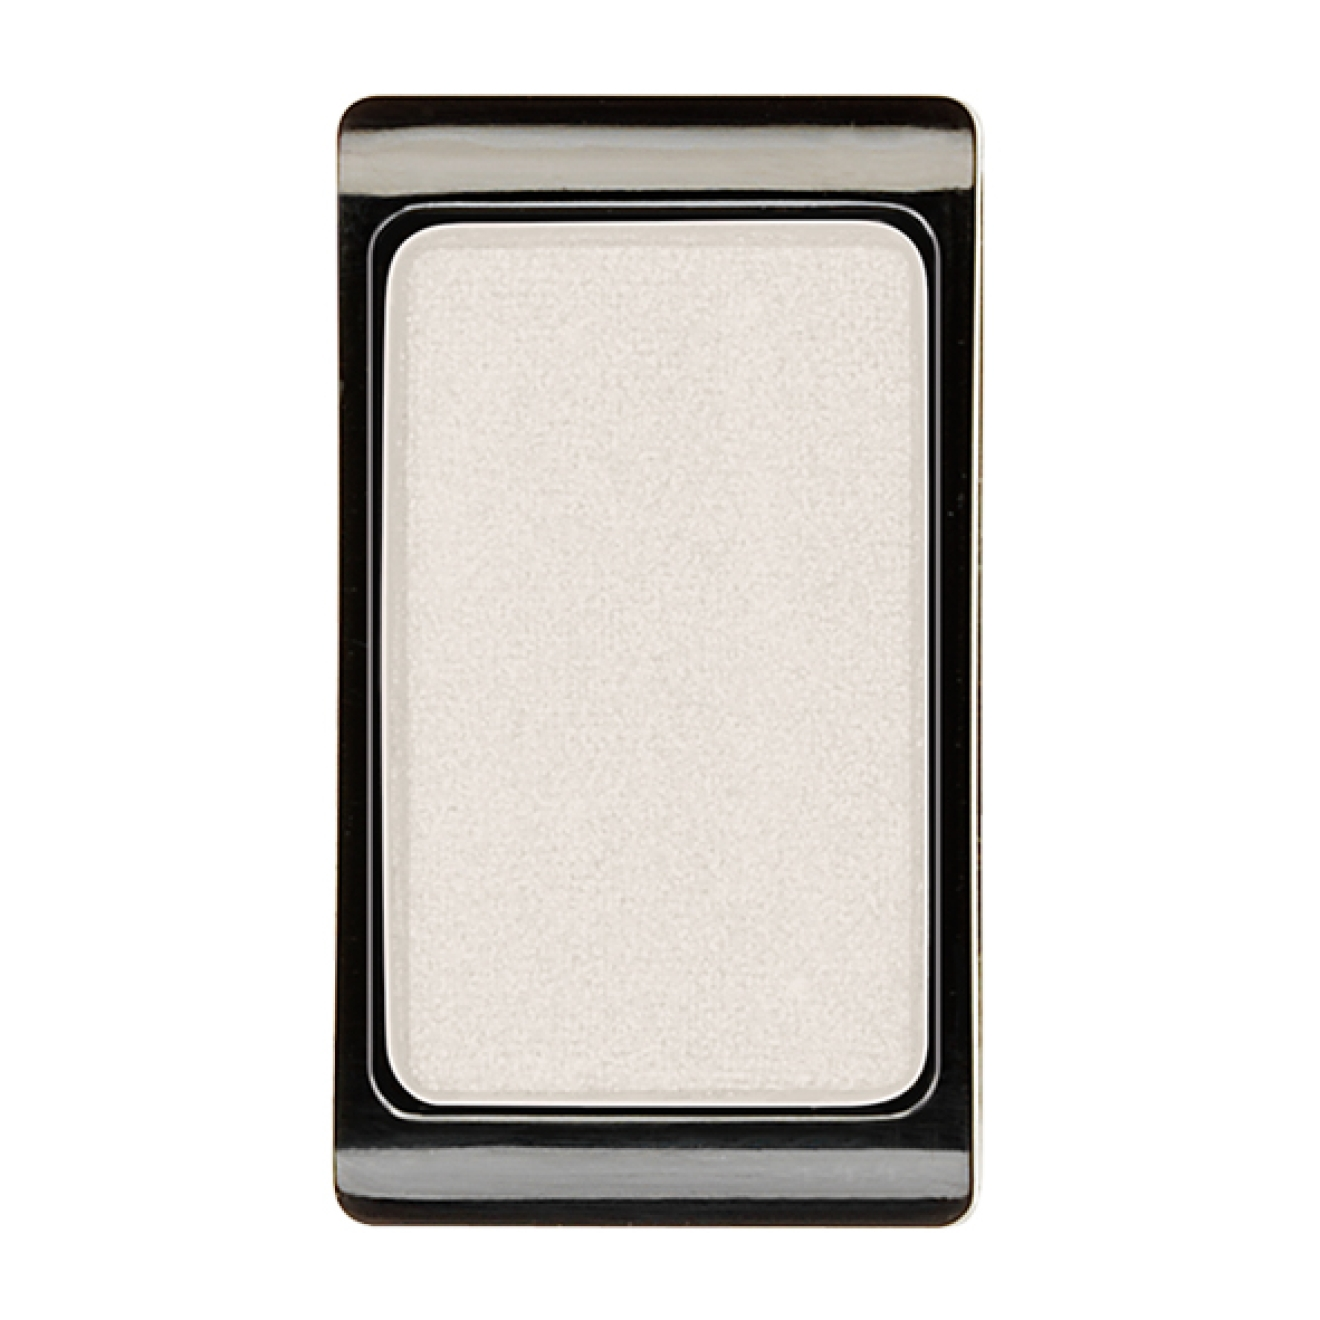 Jean D'Arcel Eye Shadow refill 08